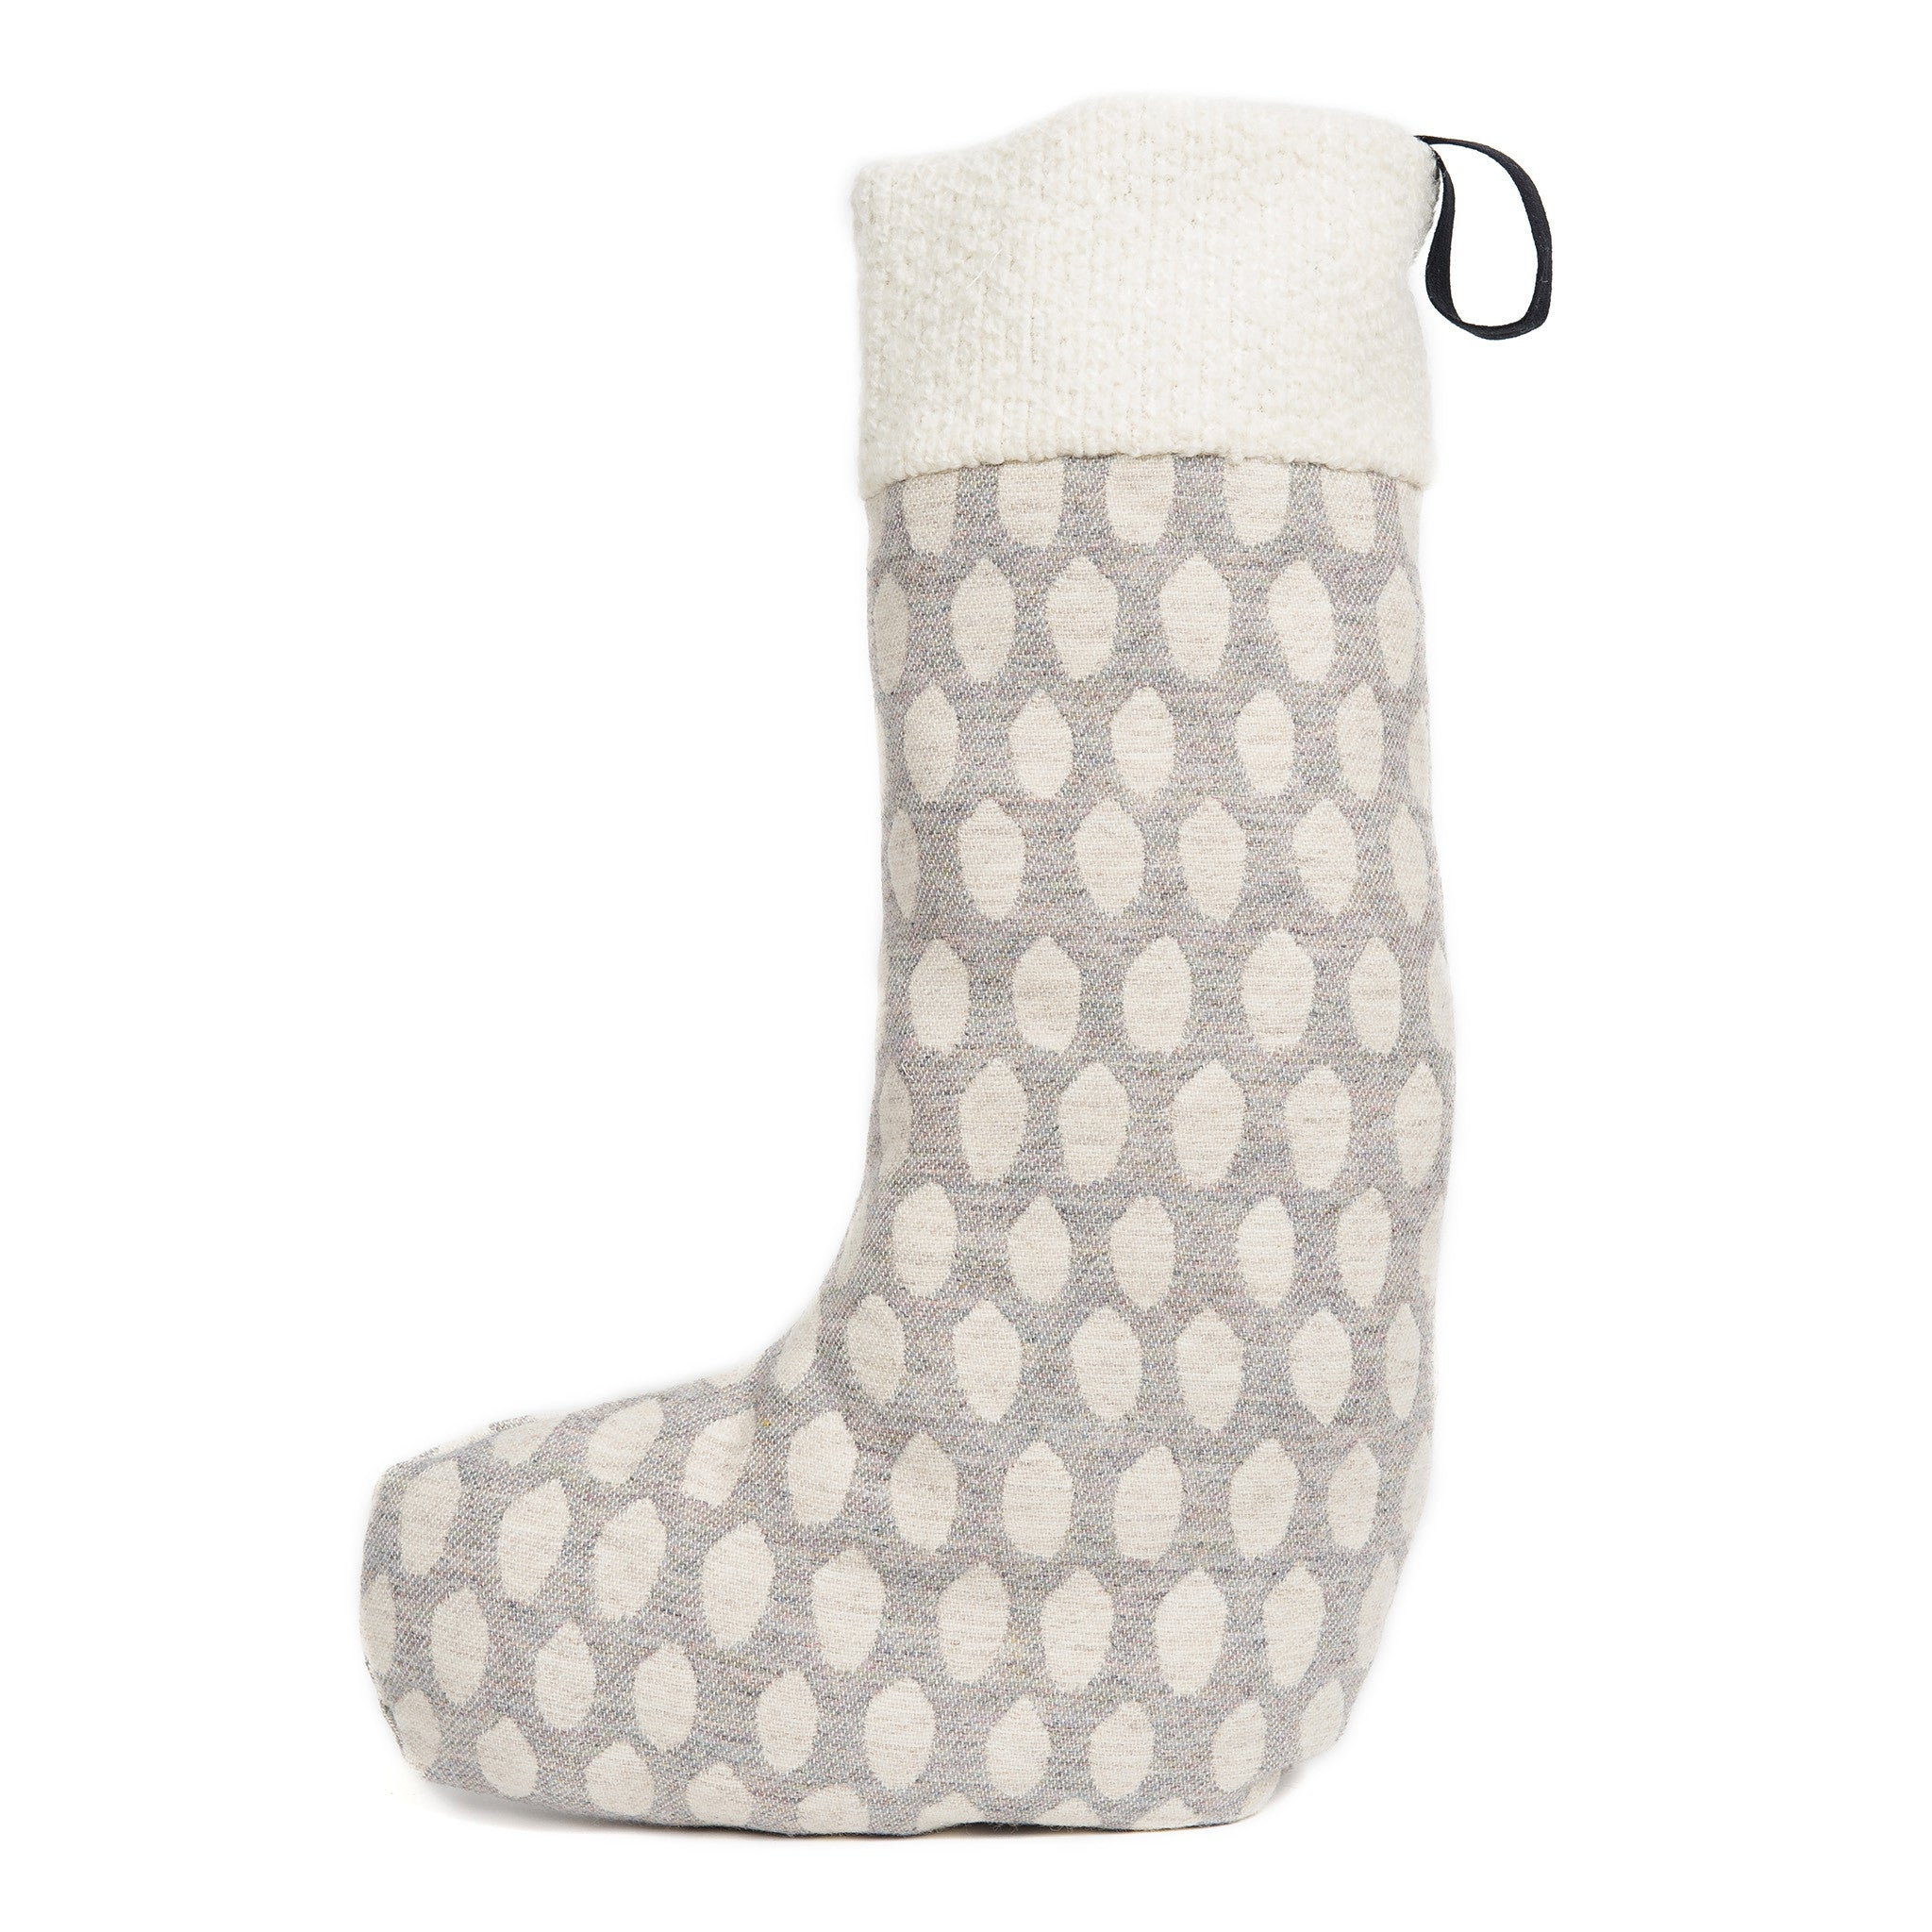 Merino Lambswool Christmas Stocking - Elca Pearl and Linen Stocking - Tori Murphy Ltd